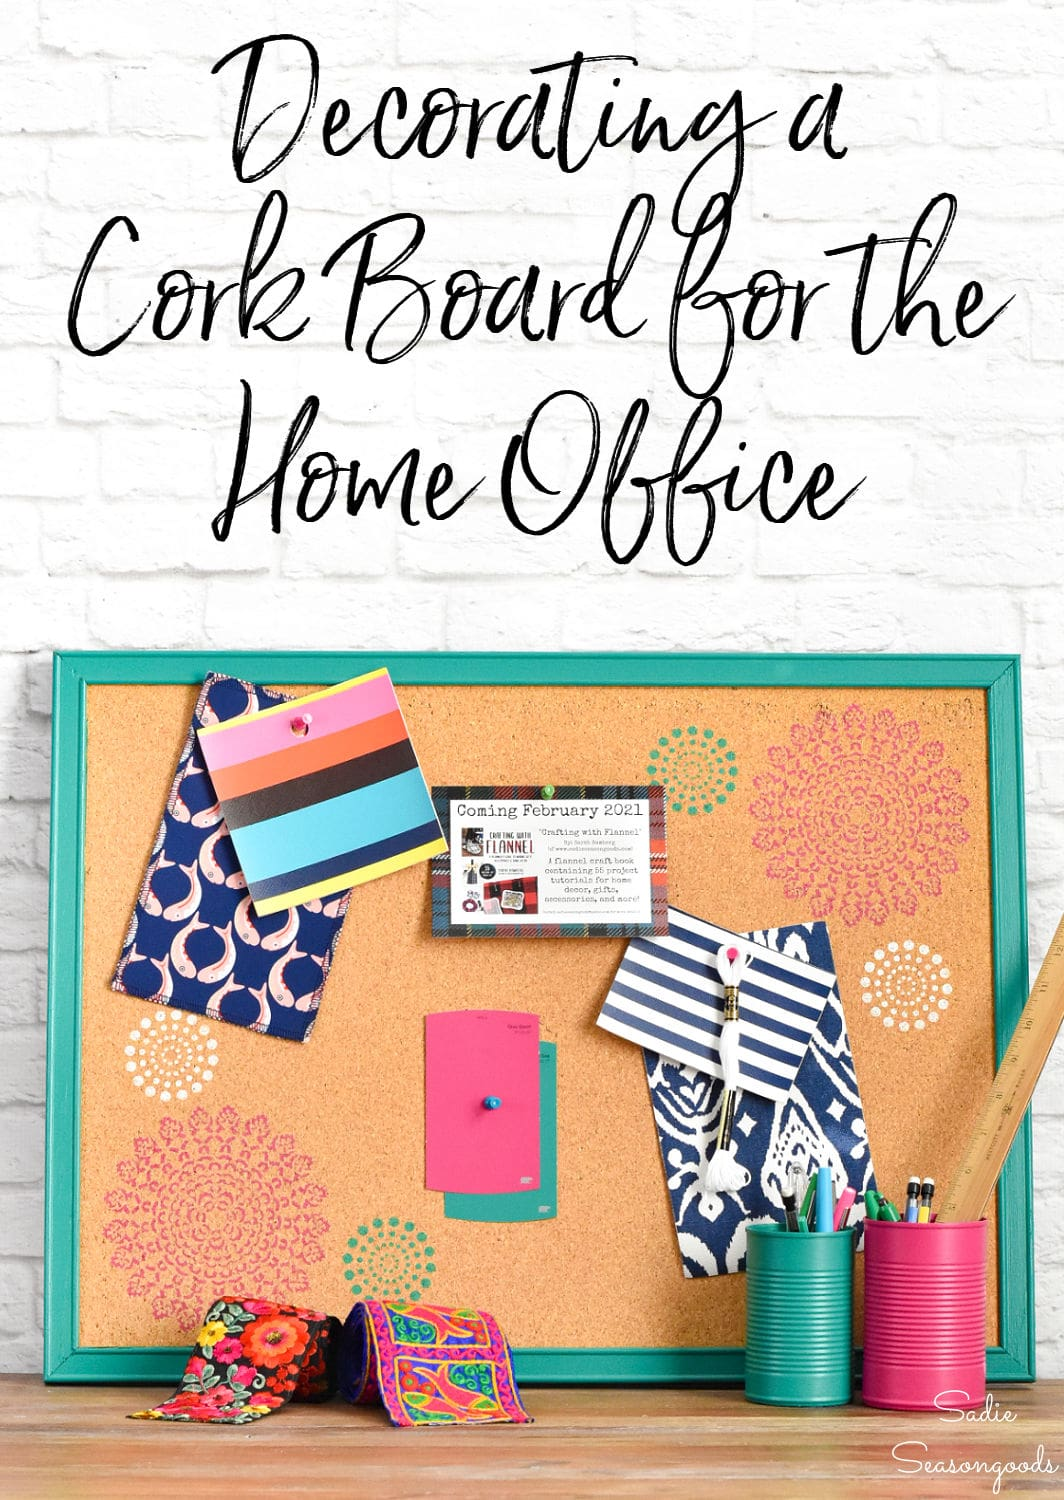 Decorative cork board with by stenciling on cork